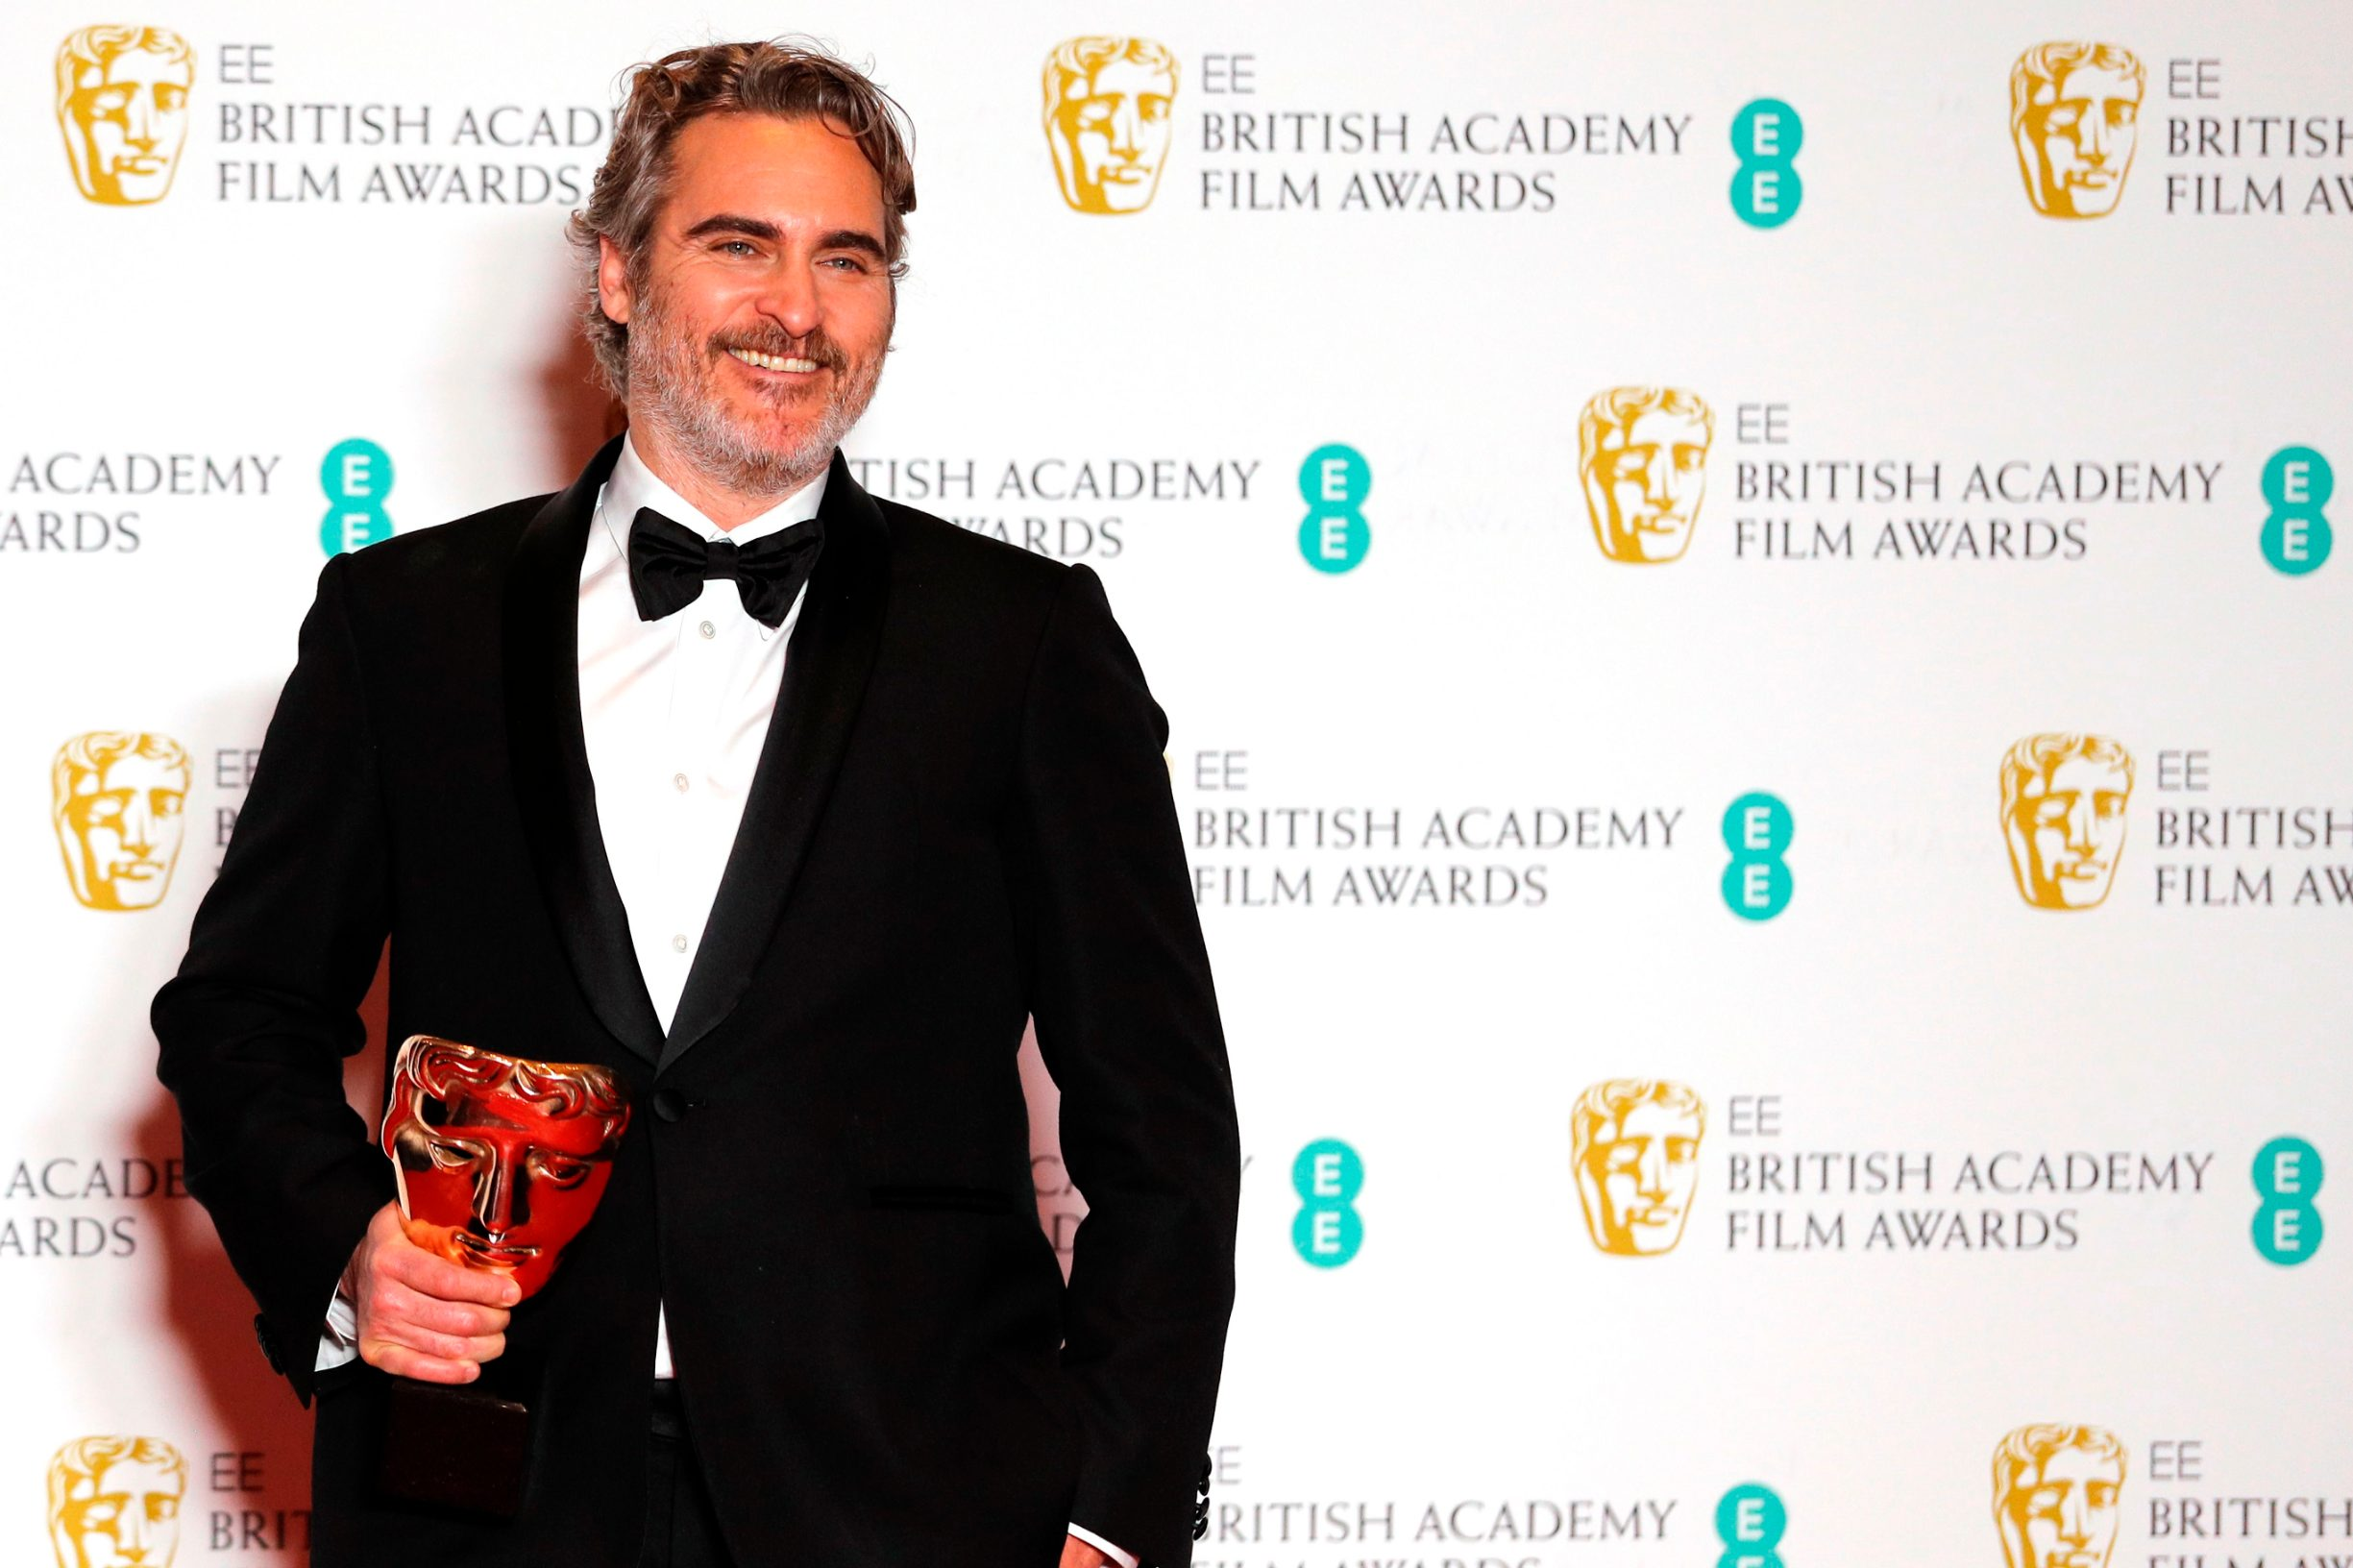 US actor Joaquin Phoenix poses with the award for a Leading Actor for his work on the film 'Joker' at the BAFTA British Academy Film Awards at the Royal Albert Hall in London on February 2, 2020. (Photo by Adrian DENNIS / AFP)